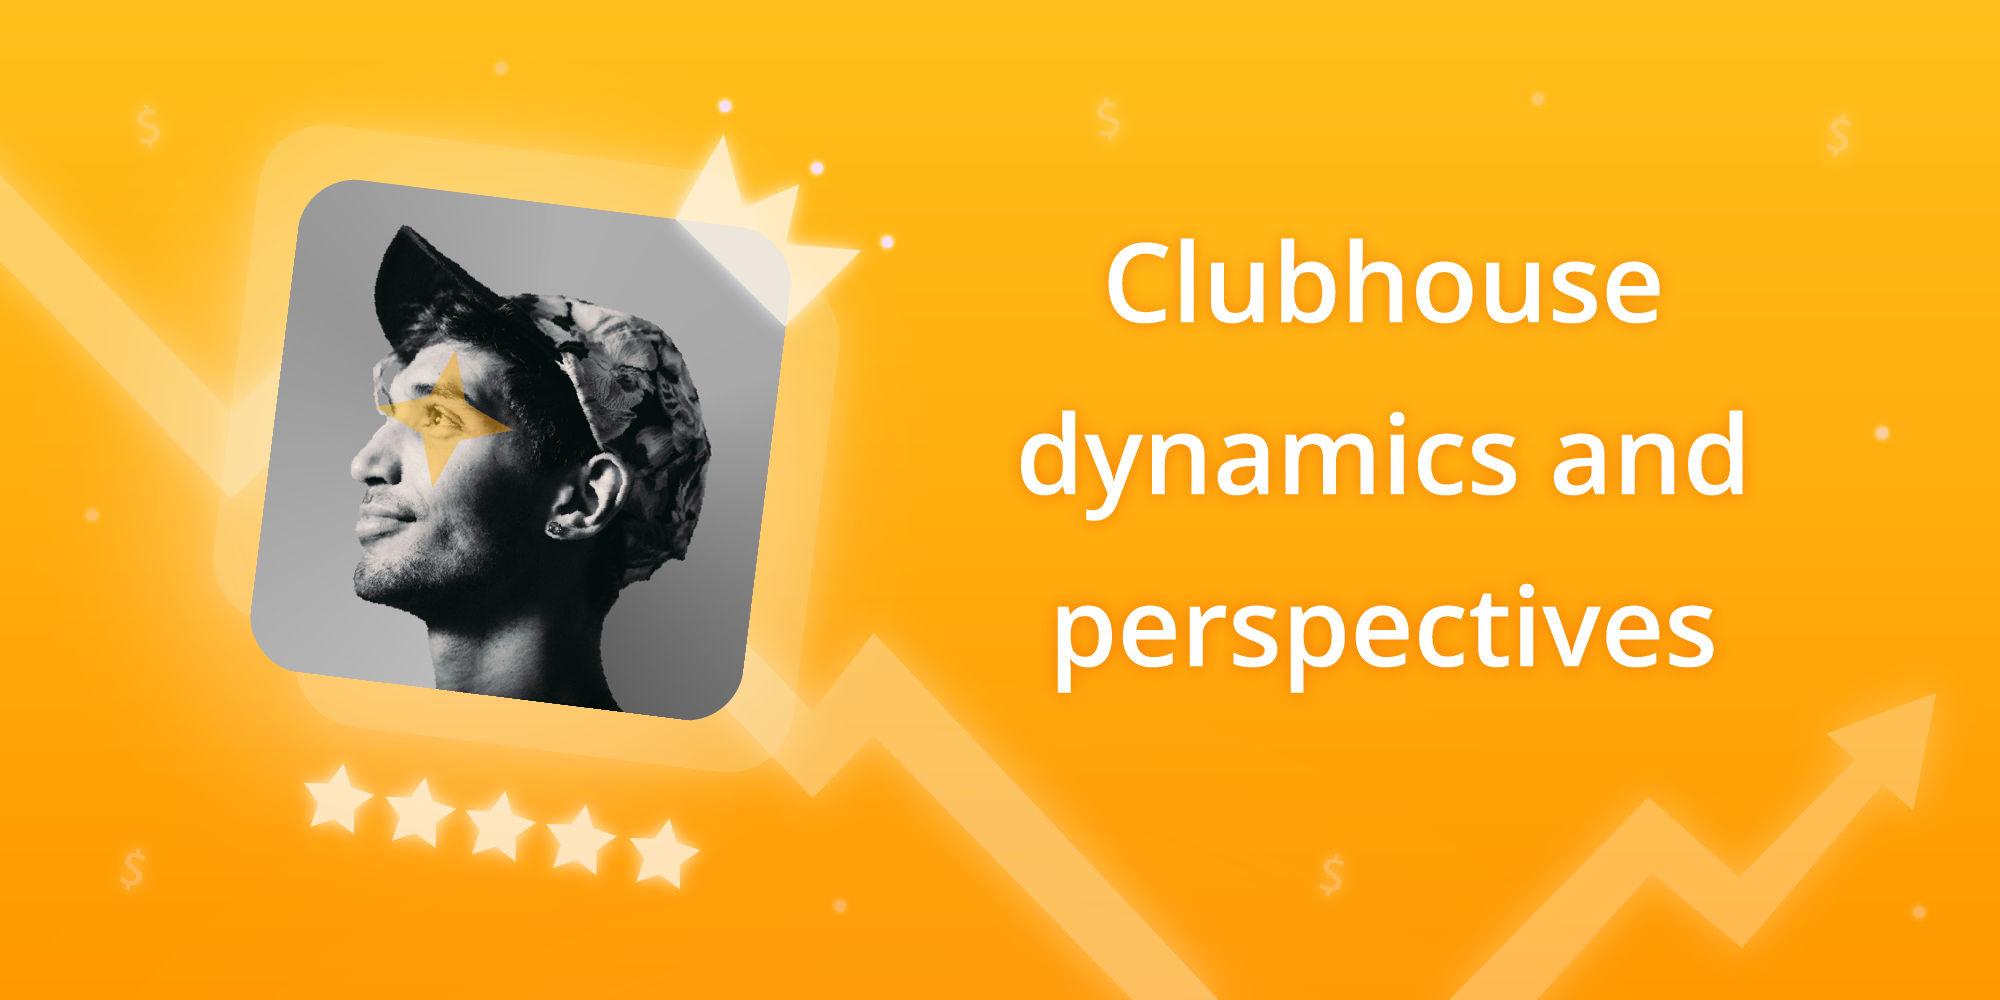 Clubhouse dynamics and perspectives